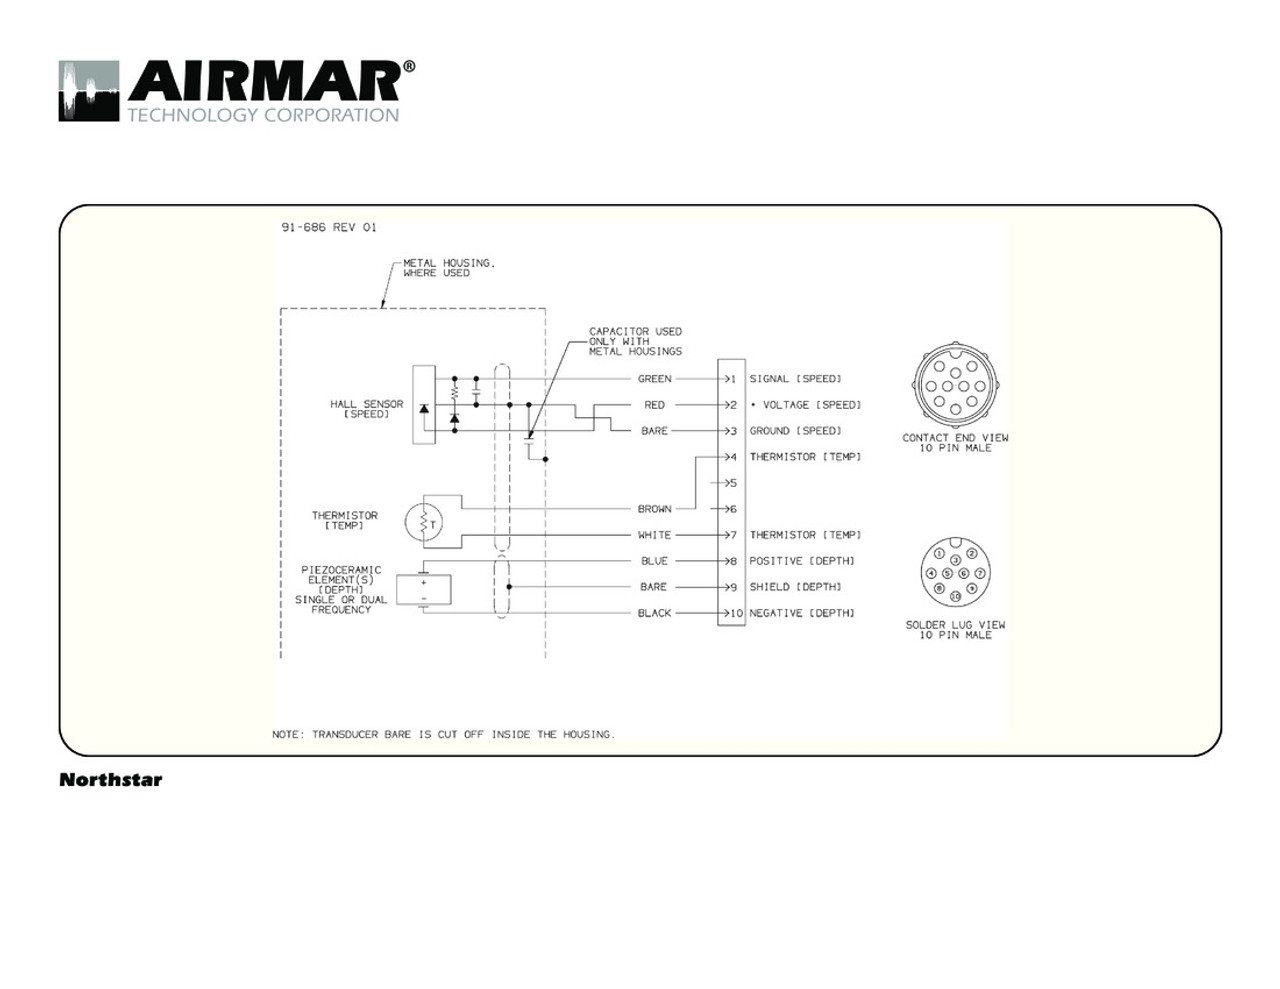 10 Pin Connector Wiring Diagram - Today Diagram Database Western Controller Pin Wiring Diagram on